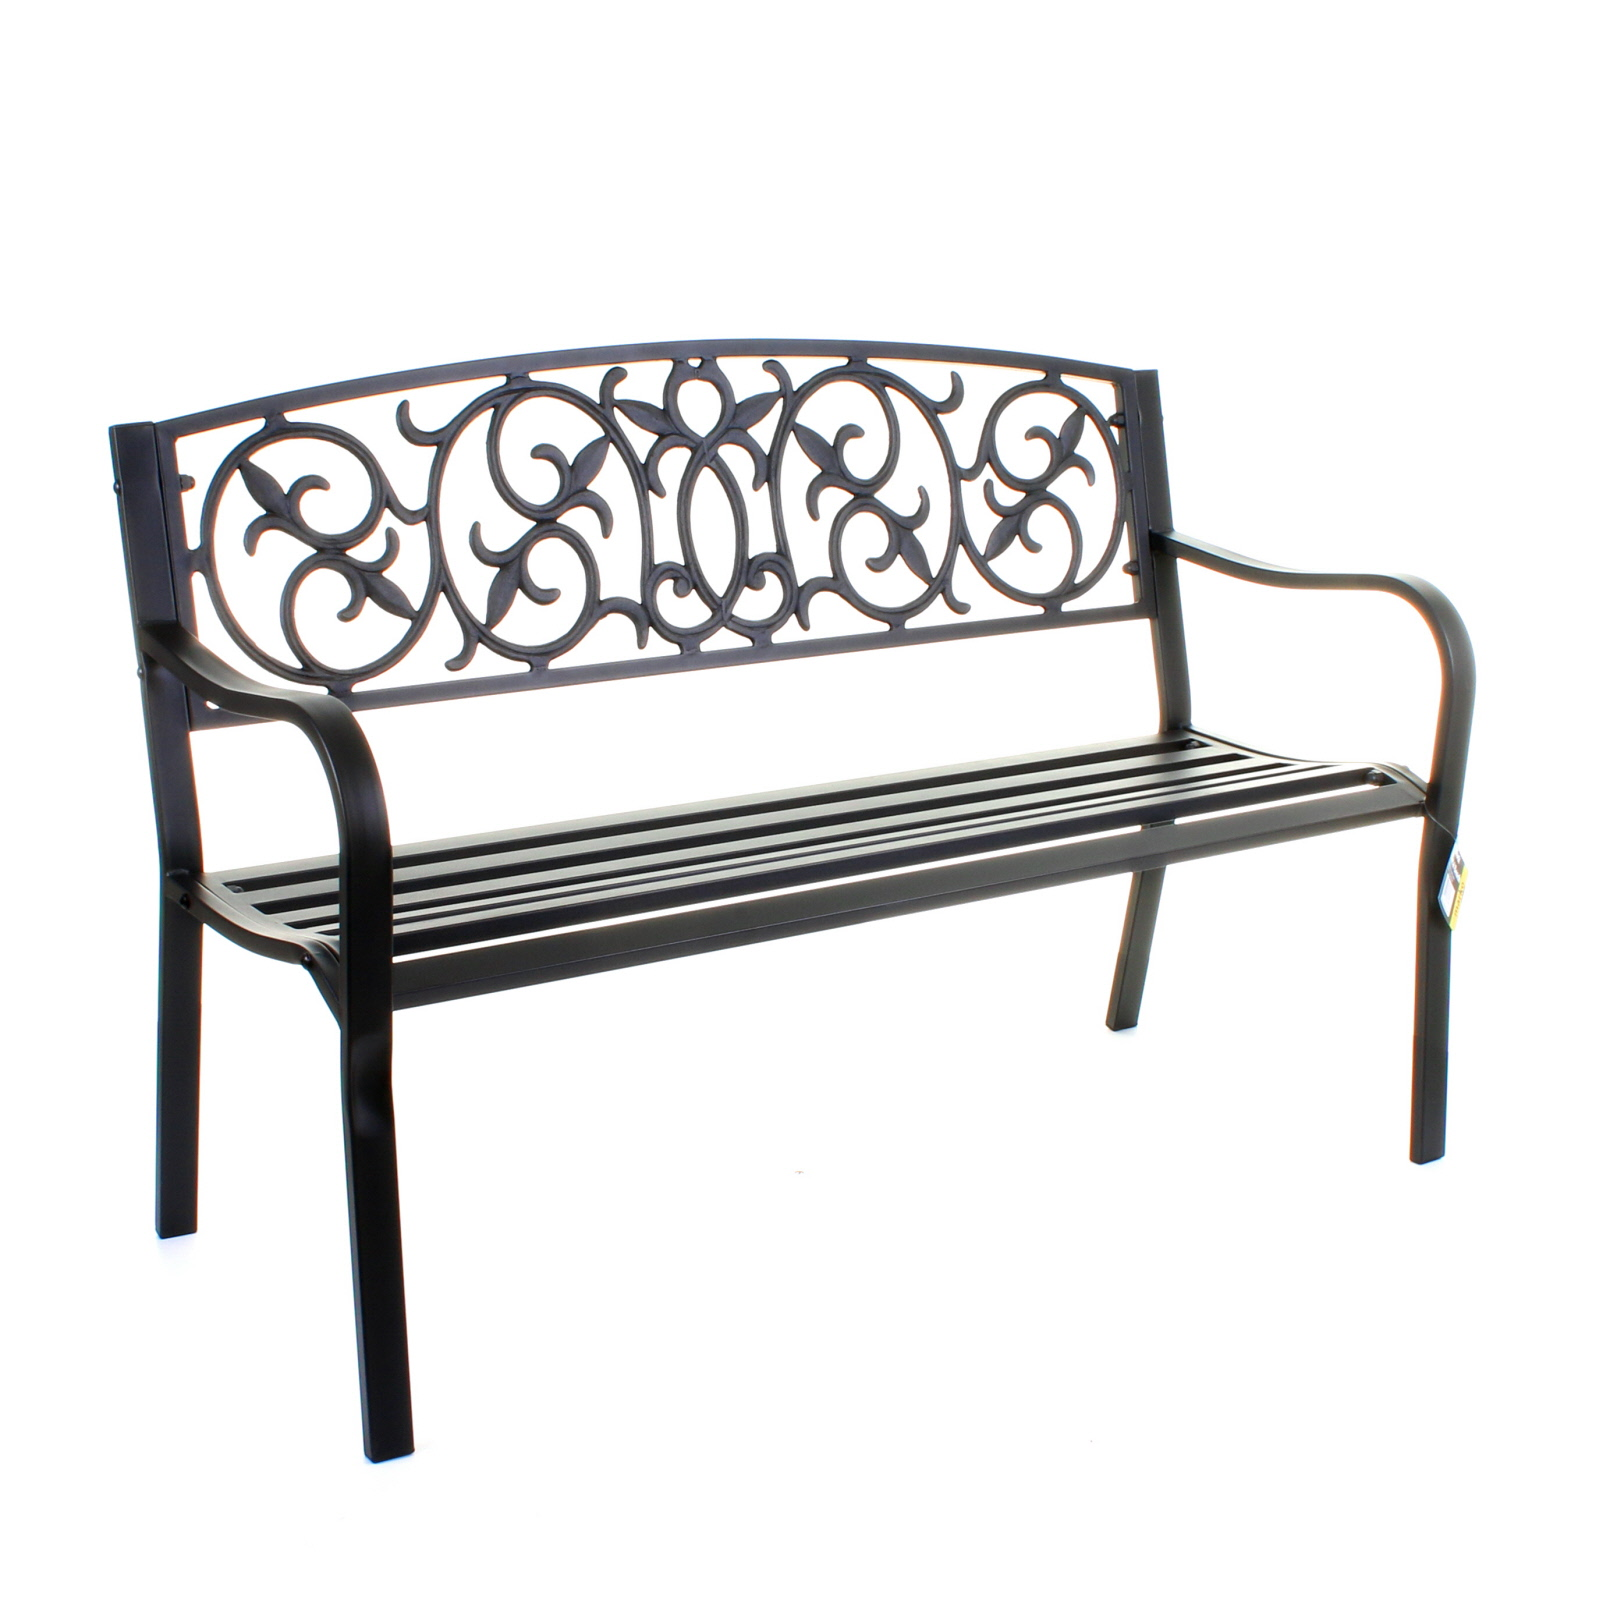 Garden Metal Bench 3 Seater Cast Iron Backrest Outdoor Furniture Home